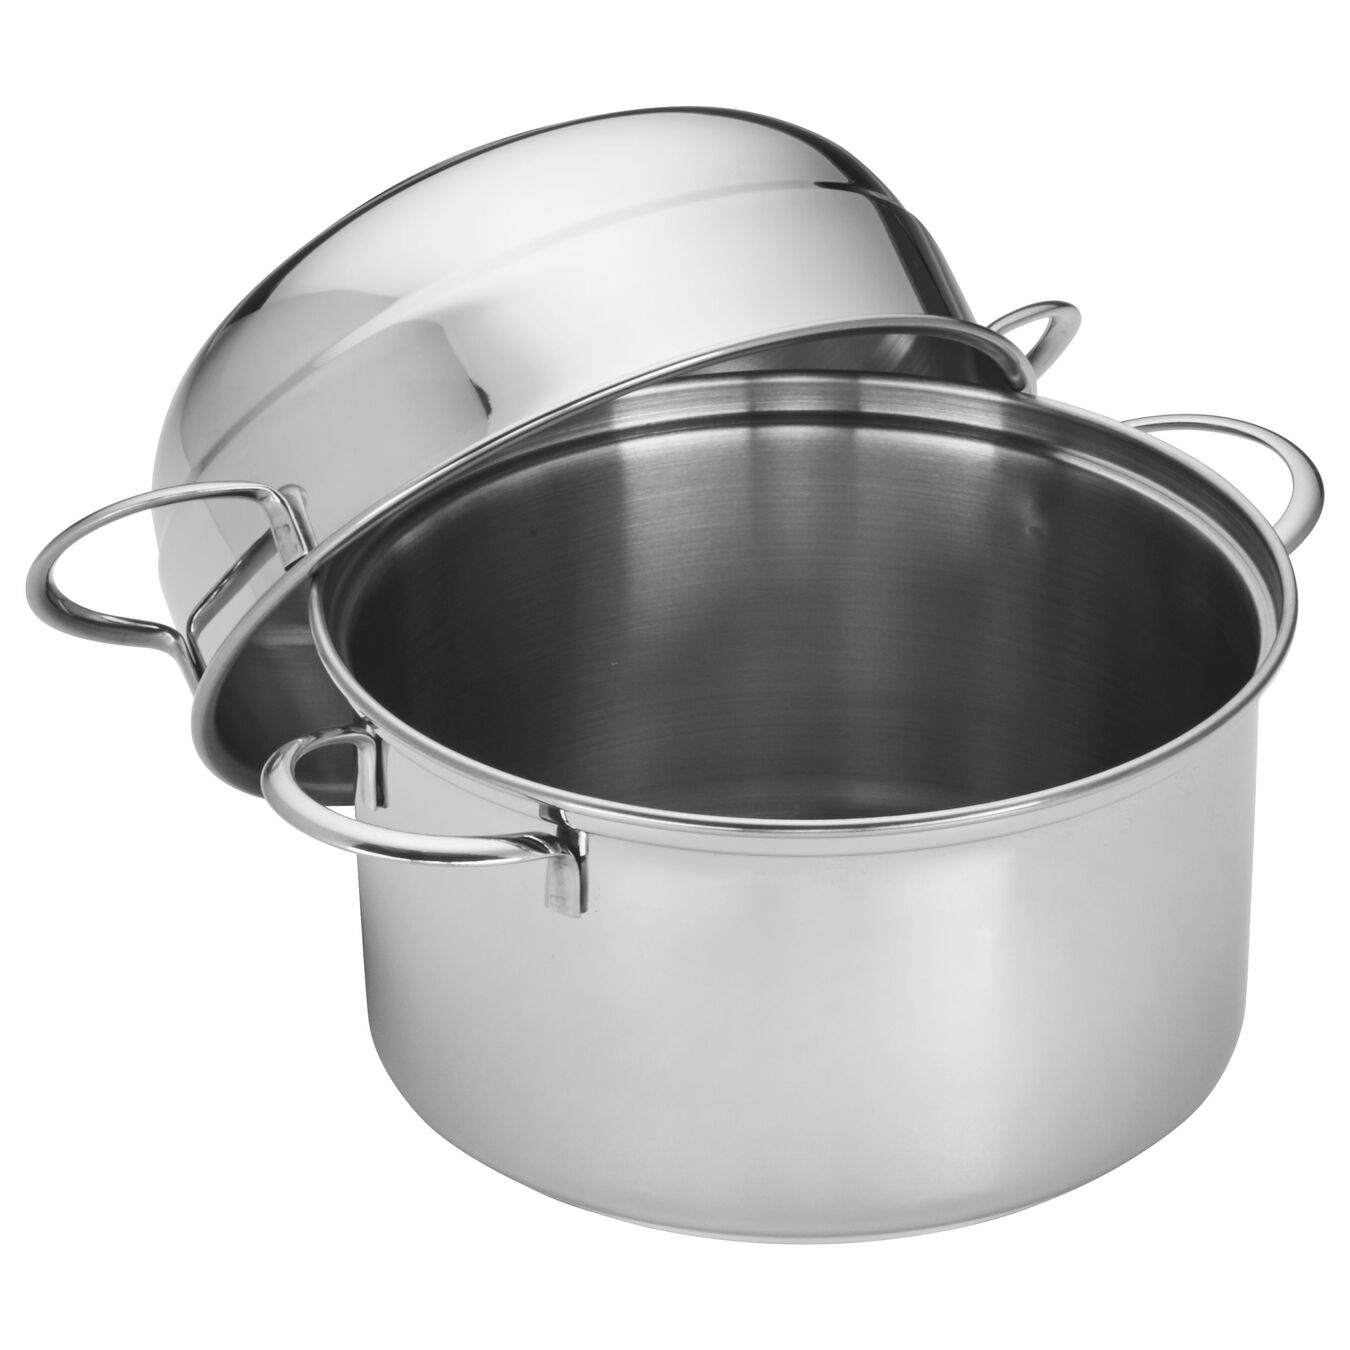 3 l 18/10 Stainless Steel round Moulière, Silver,,large 3